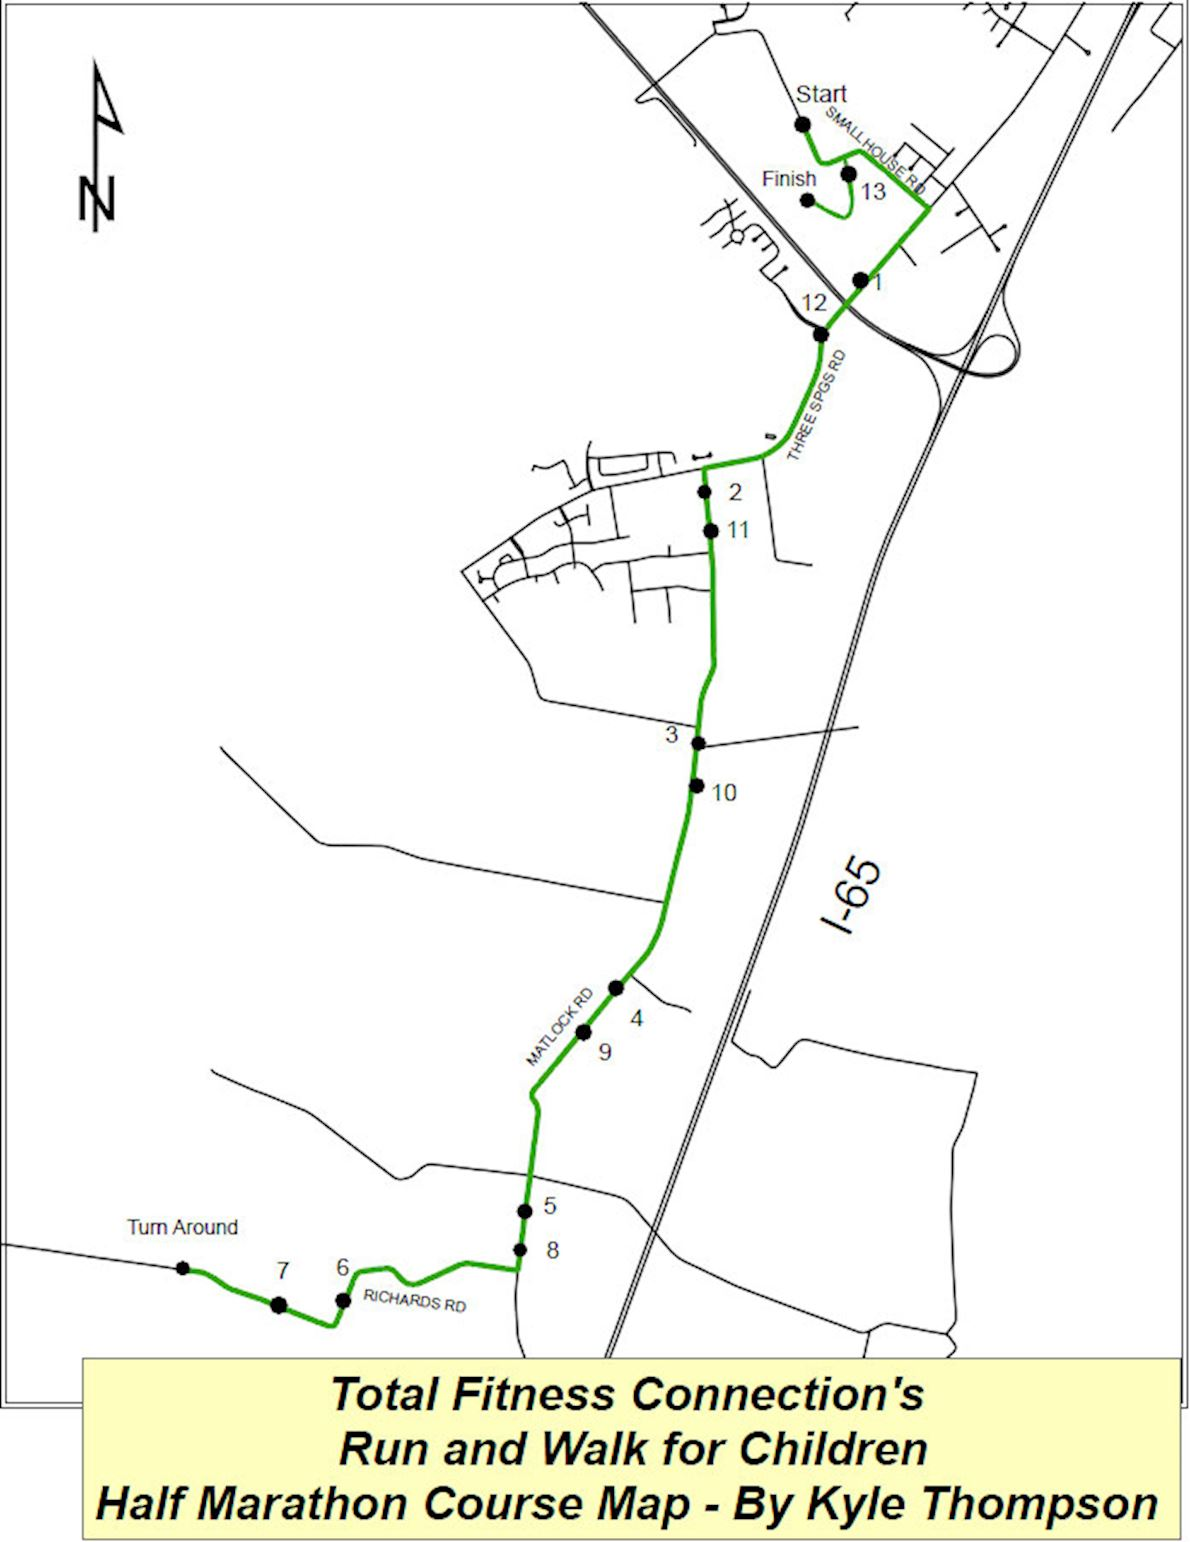 Run & Walk For Children Route Map